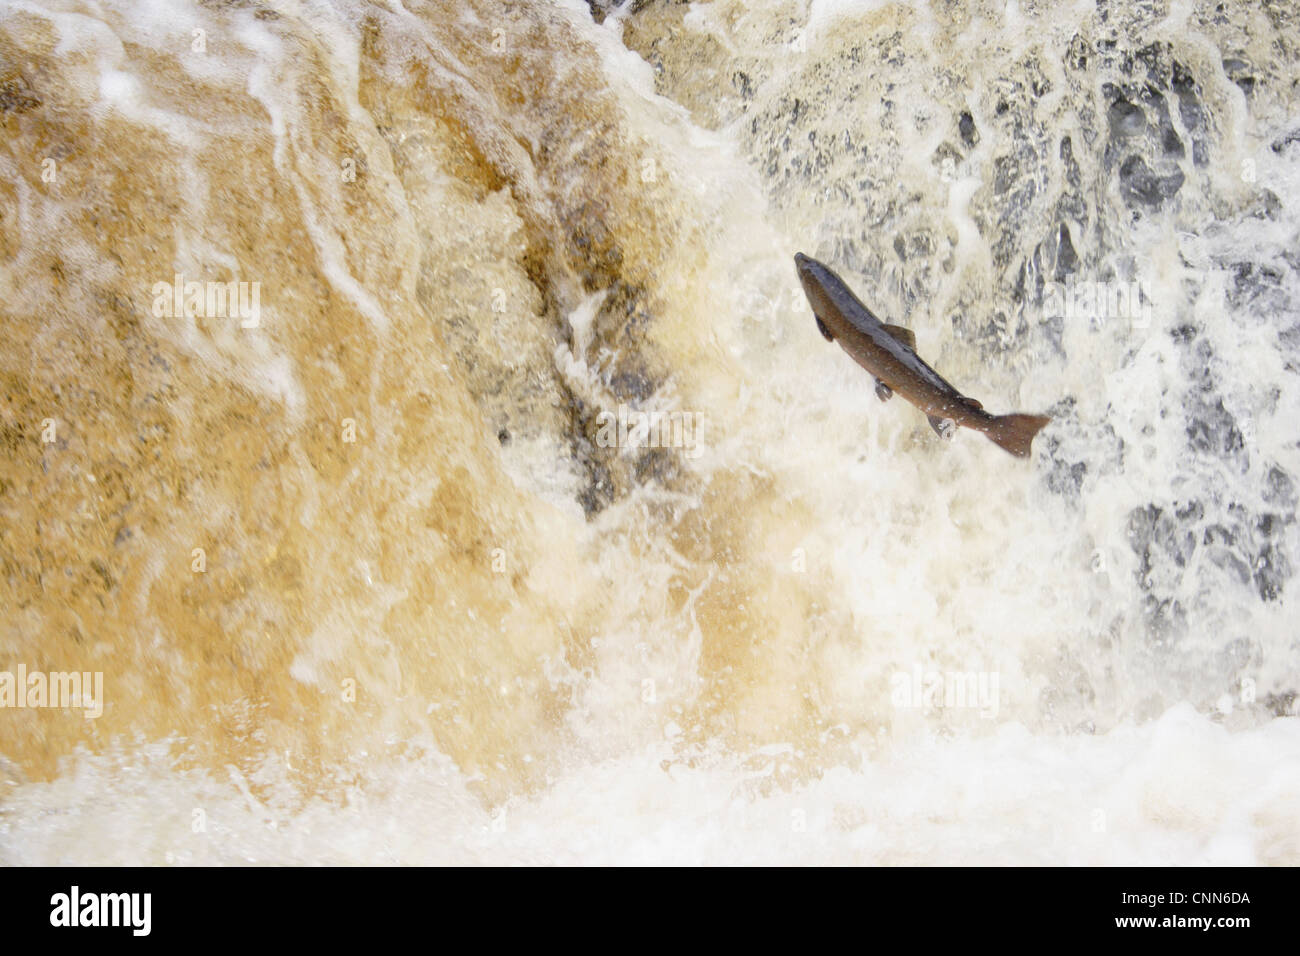 Atlantic Salmon Salmo salar adult leaping up cascade travelling upstream spawning ground Stainforth Force River - Stock Image